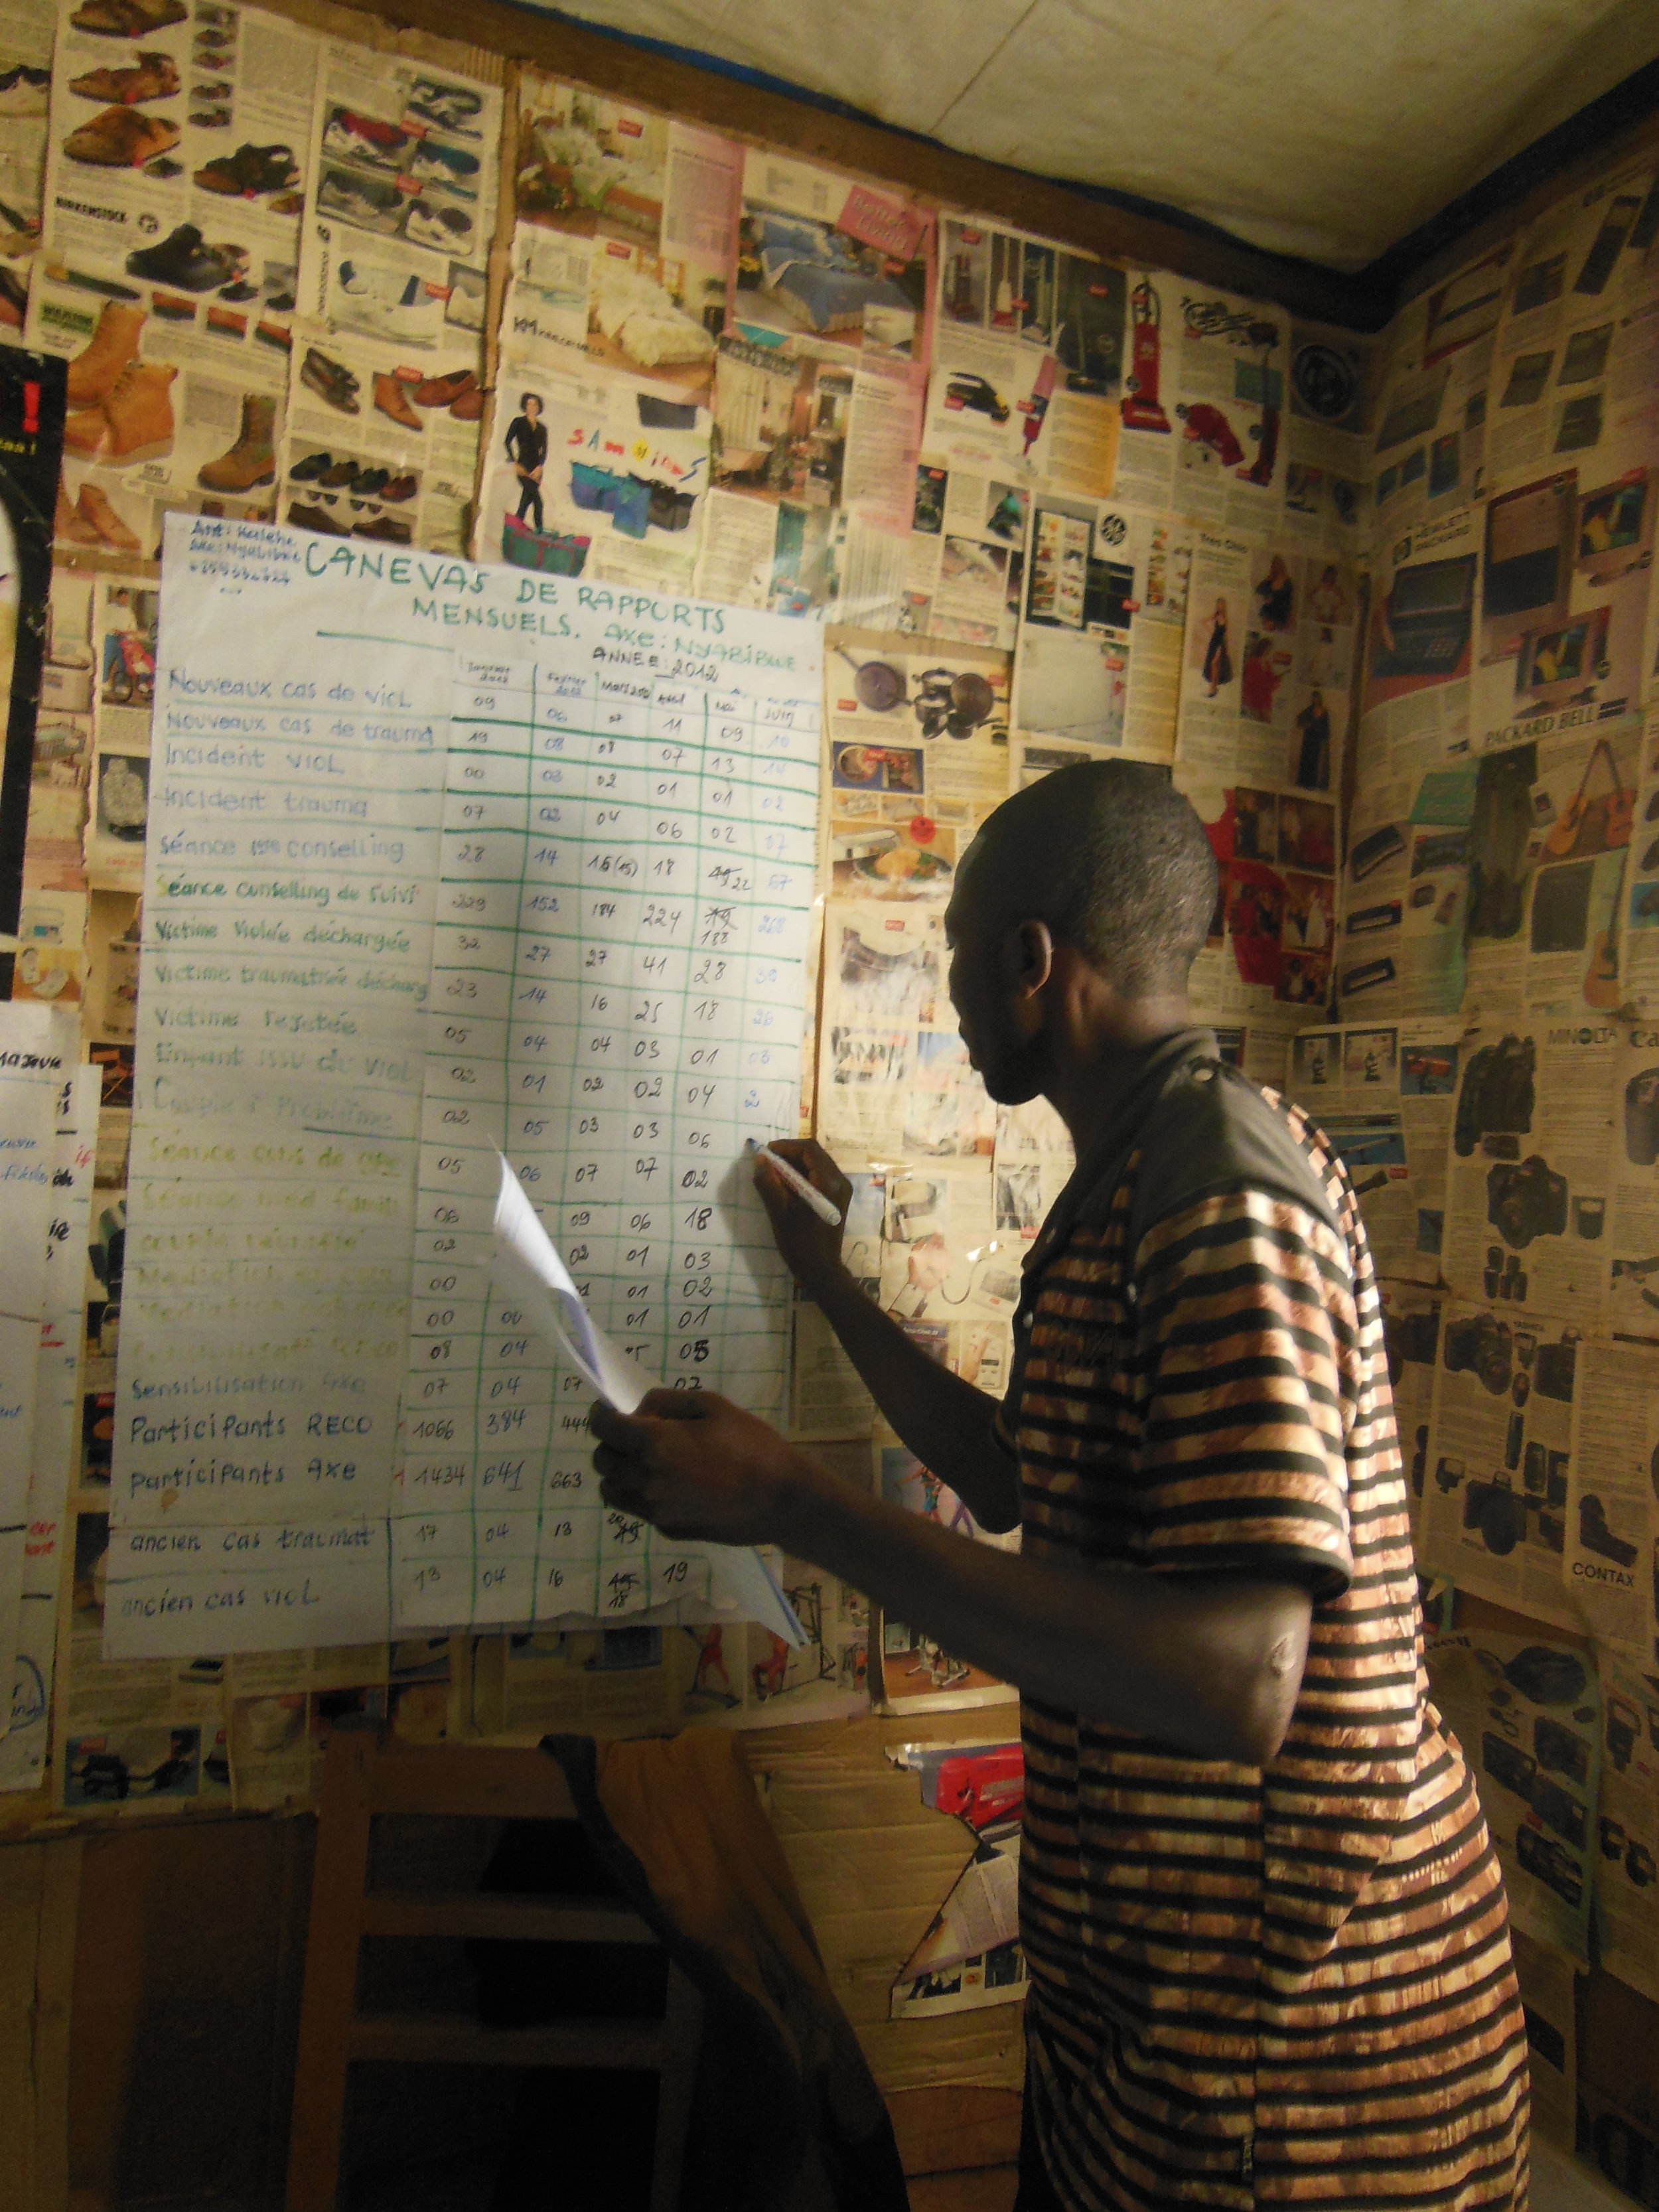 A colleague at a local NGO writes monthly statistics on the wall. In places without electricity, people rely on shared, written records to keep track of their operations